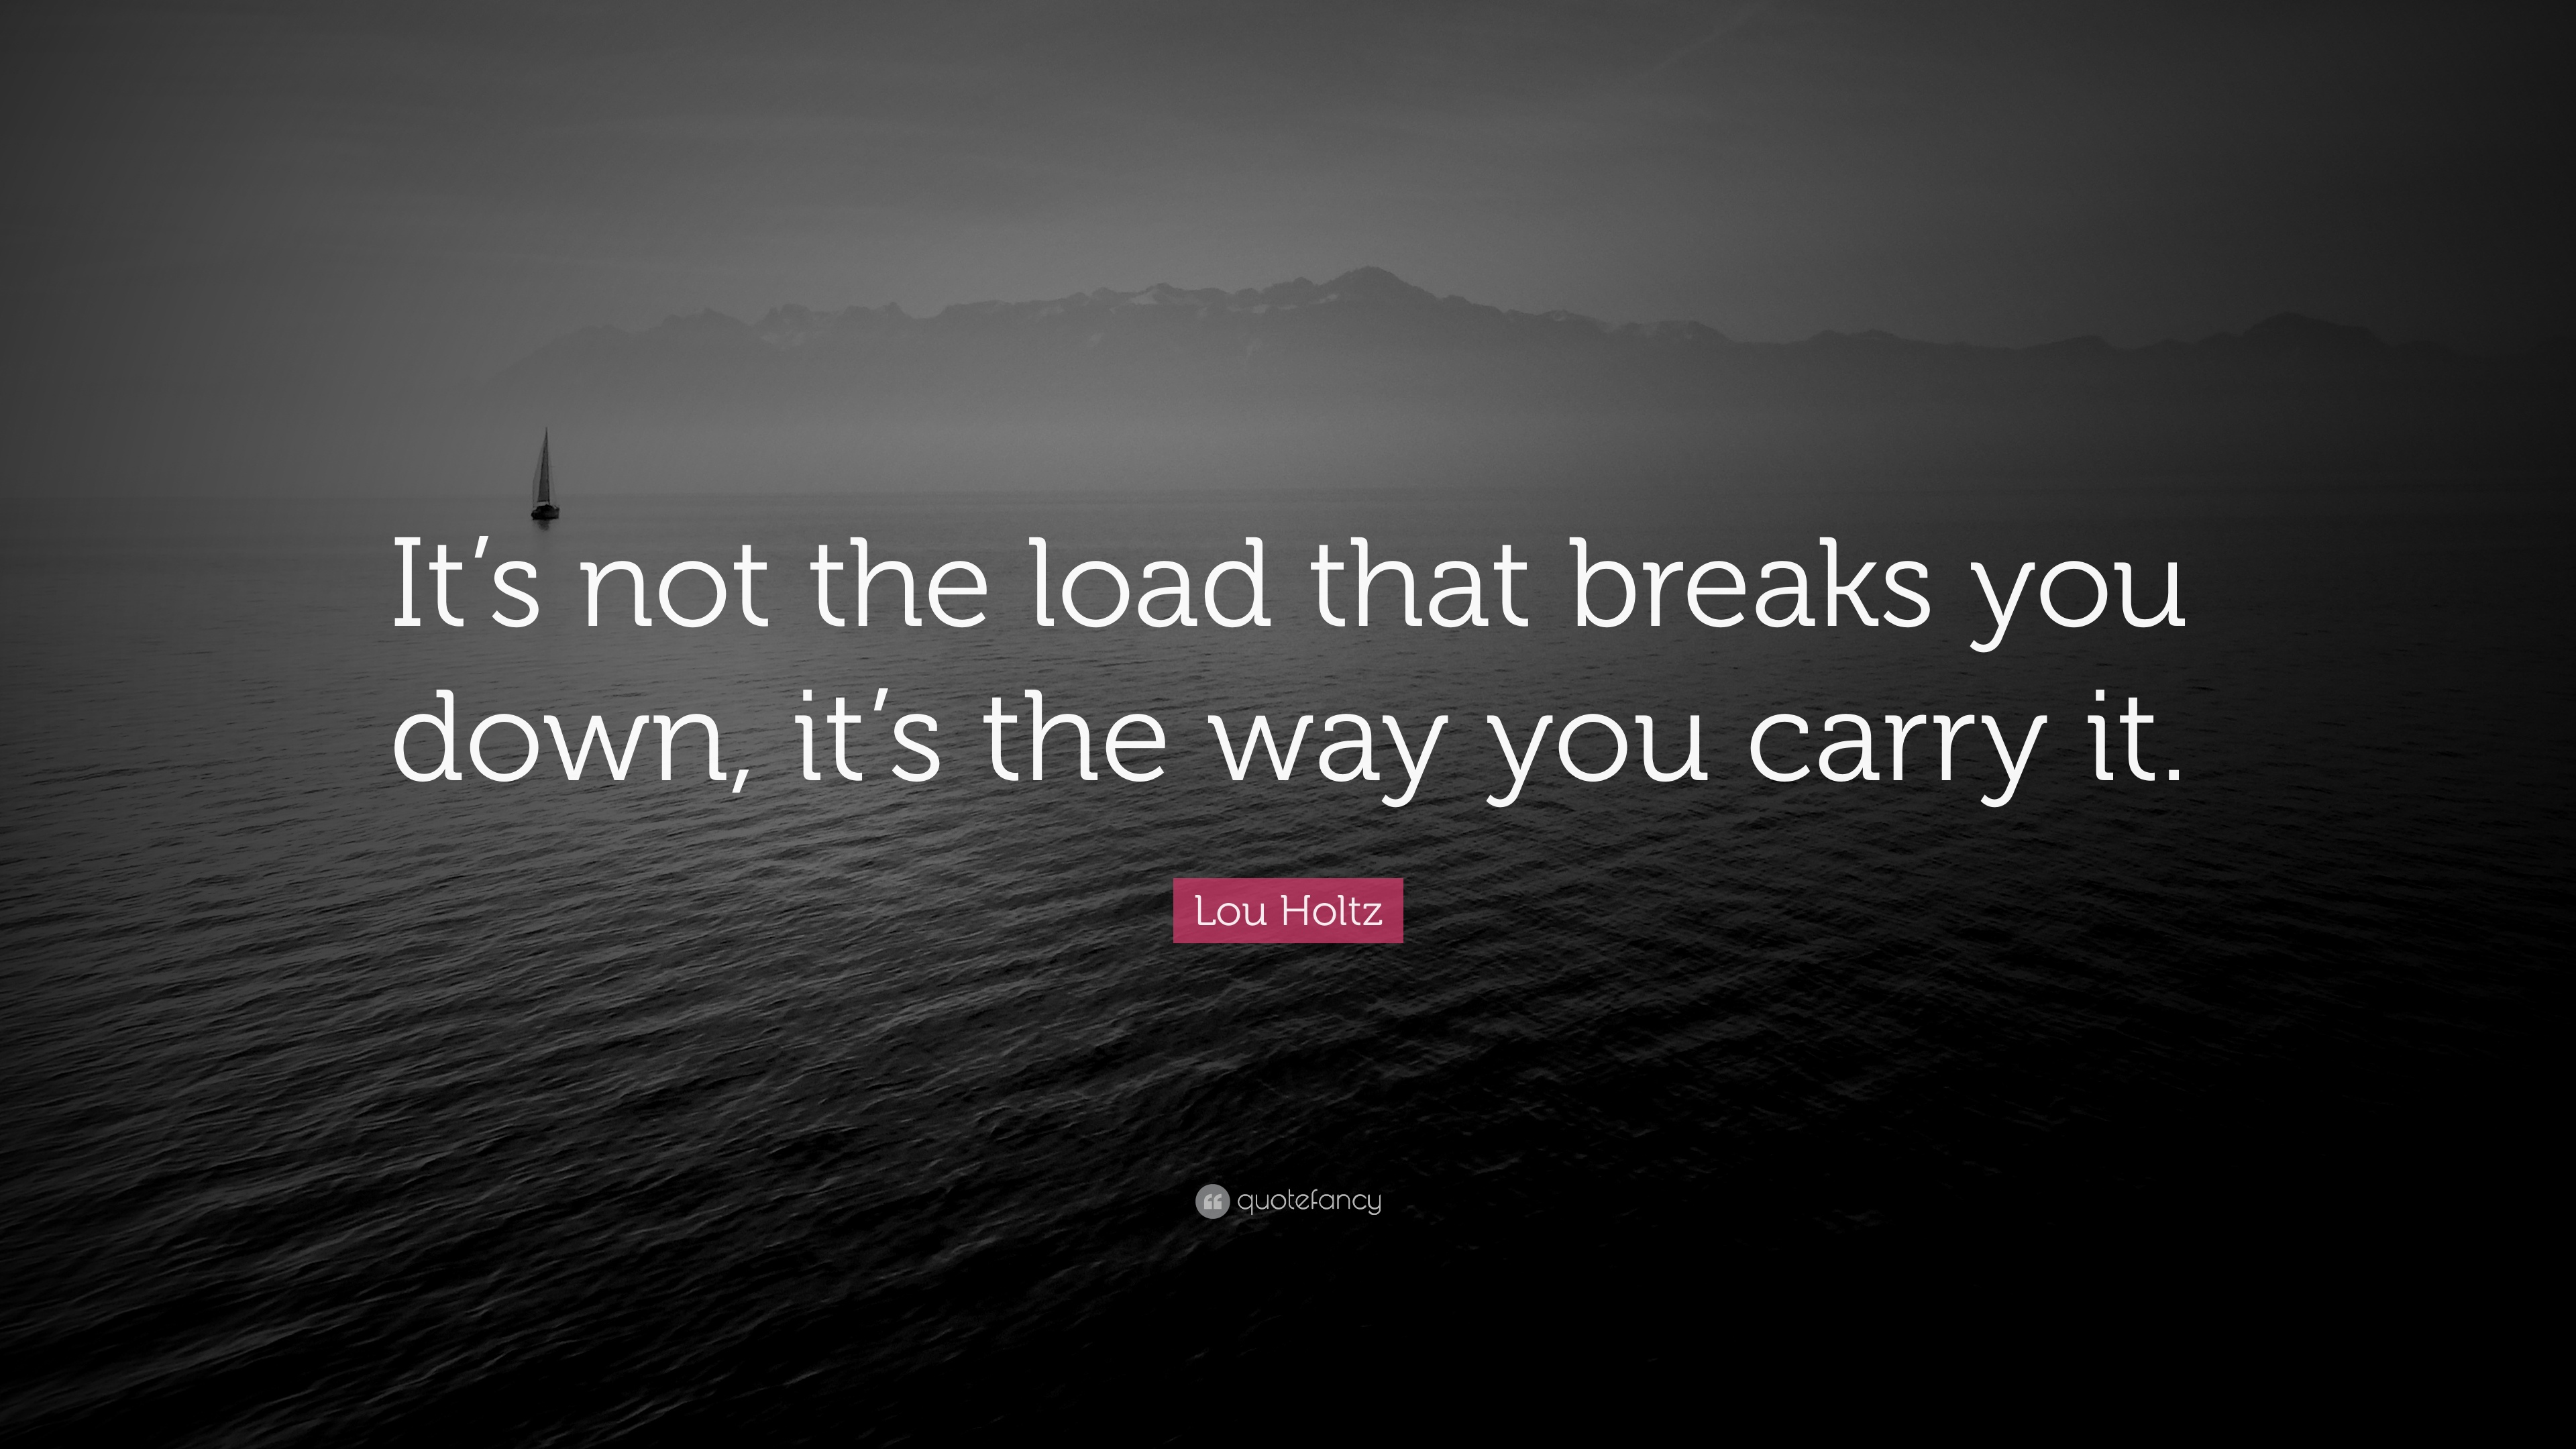 lou holtz quote   u201cit u2019s not the load that breaks you down  it u2019s the way you carry it  u201d  18